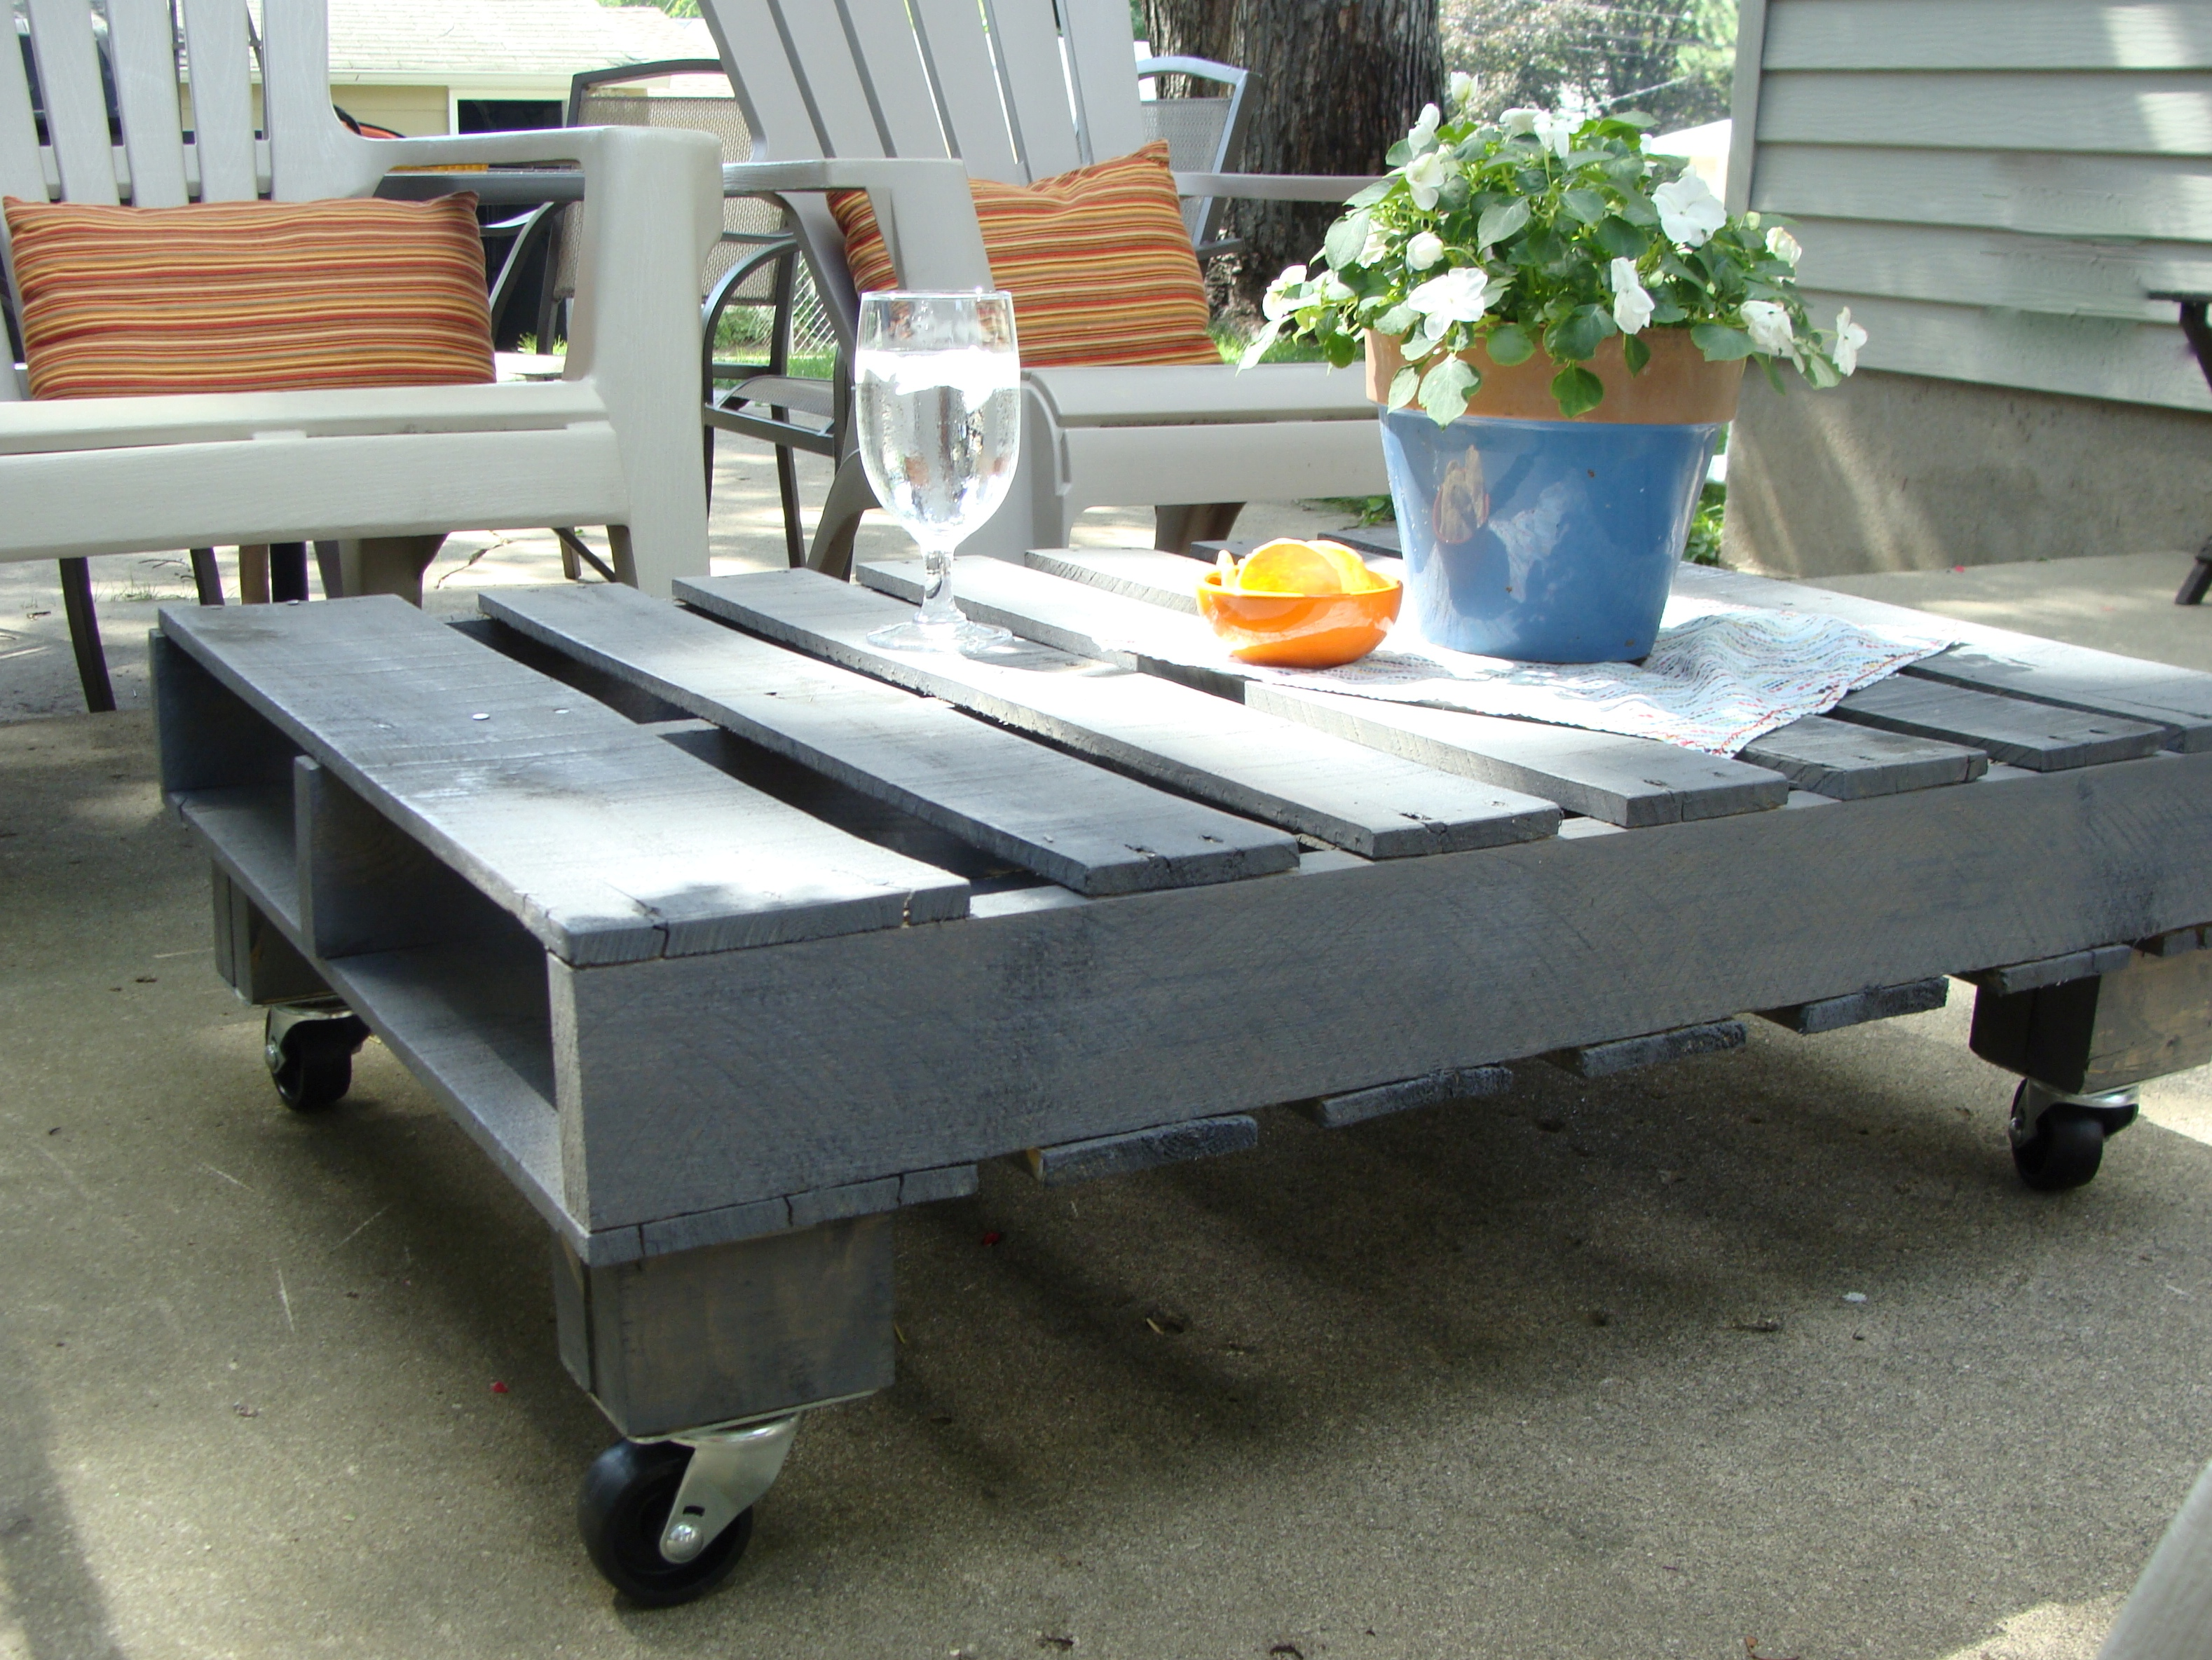 Outdoor Pallet Coffee Table Image And Description